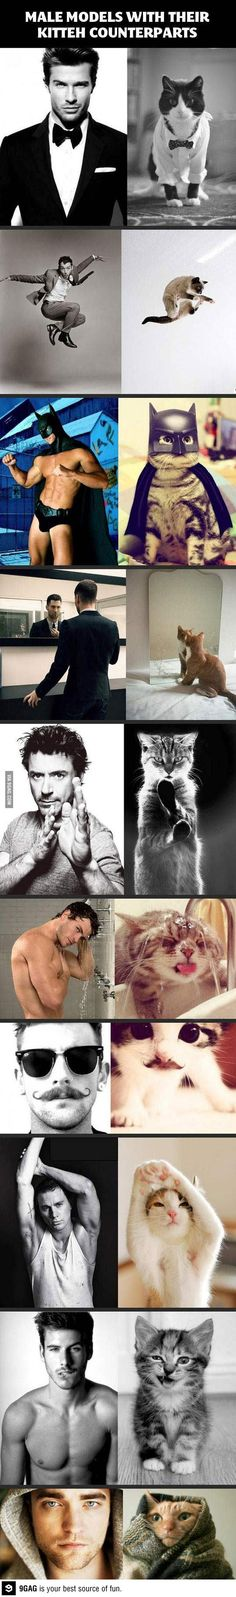 Handsome men and their kitty counterparts. I don't like cats but I love men!